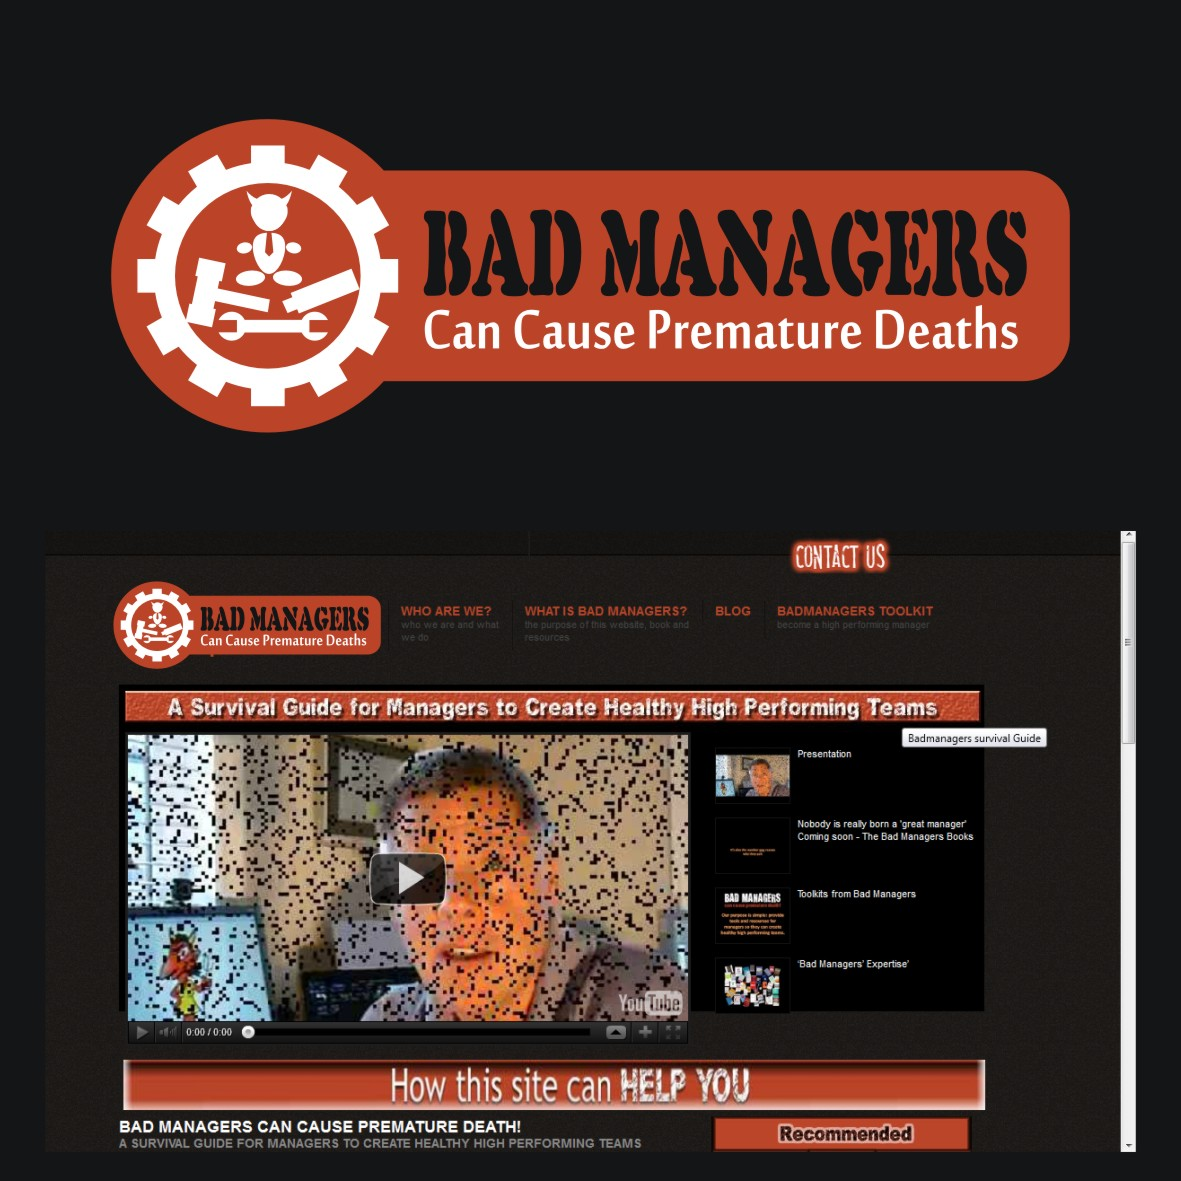 Logo Design by arteo_design - Entry No. 75 in the Logo Design Contest Unique Logo Design Wanted for Bad Managers Can Cause Premature Deaths.